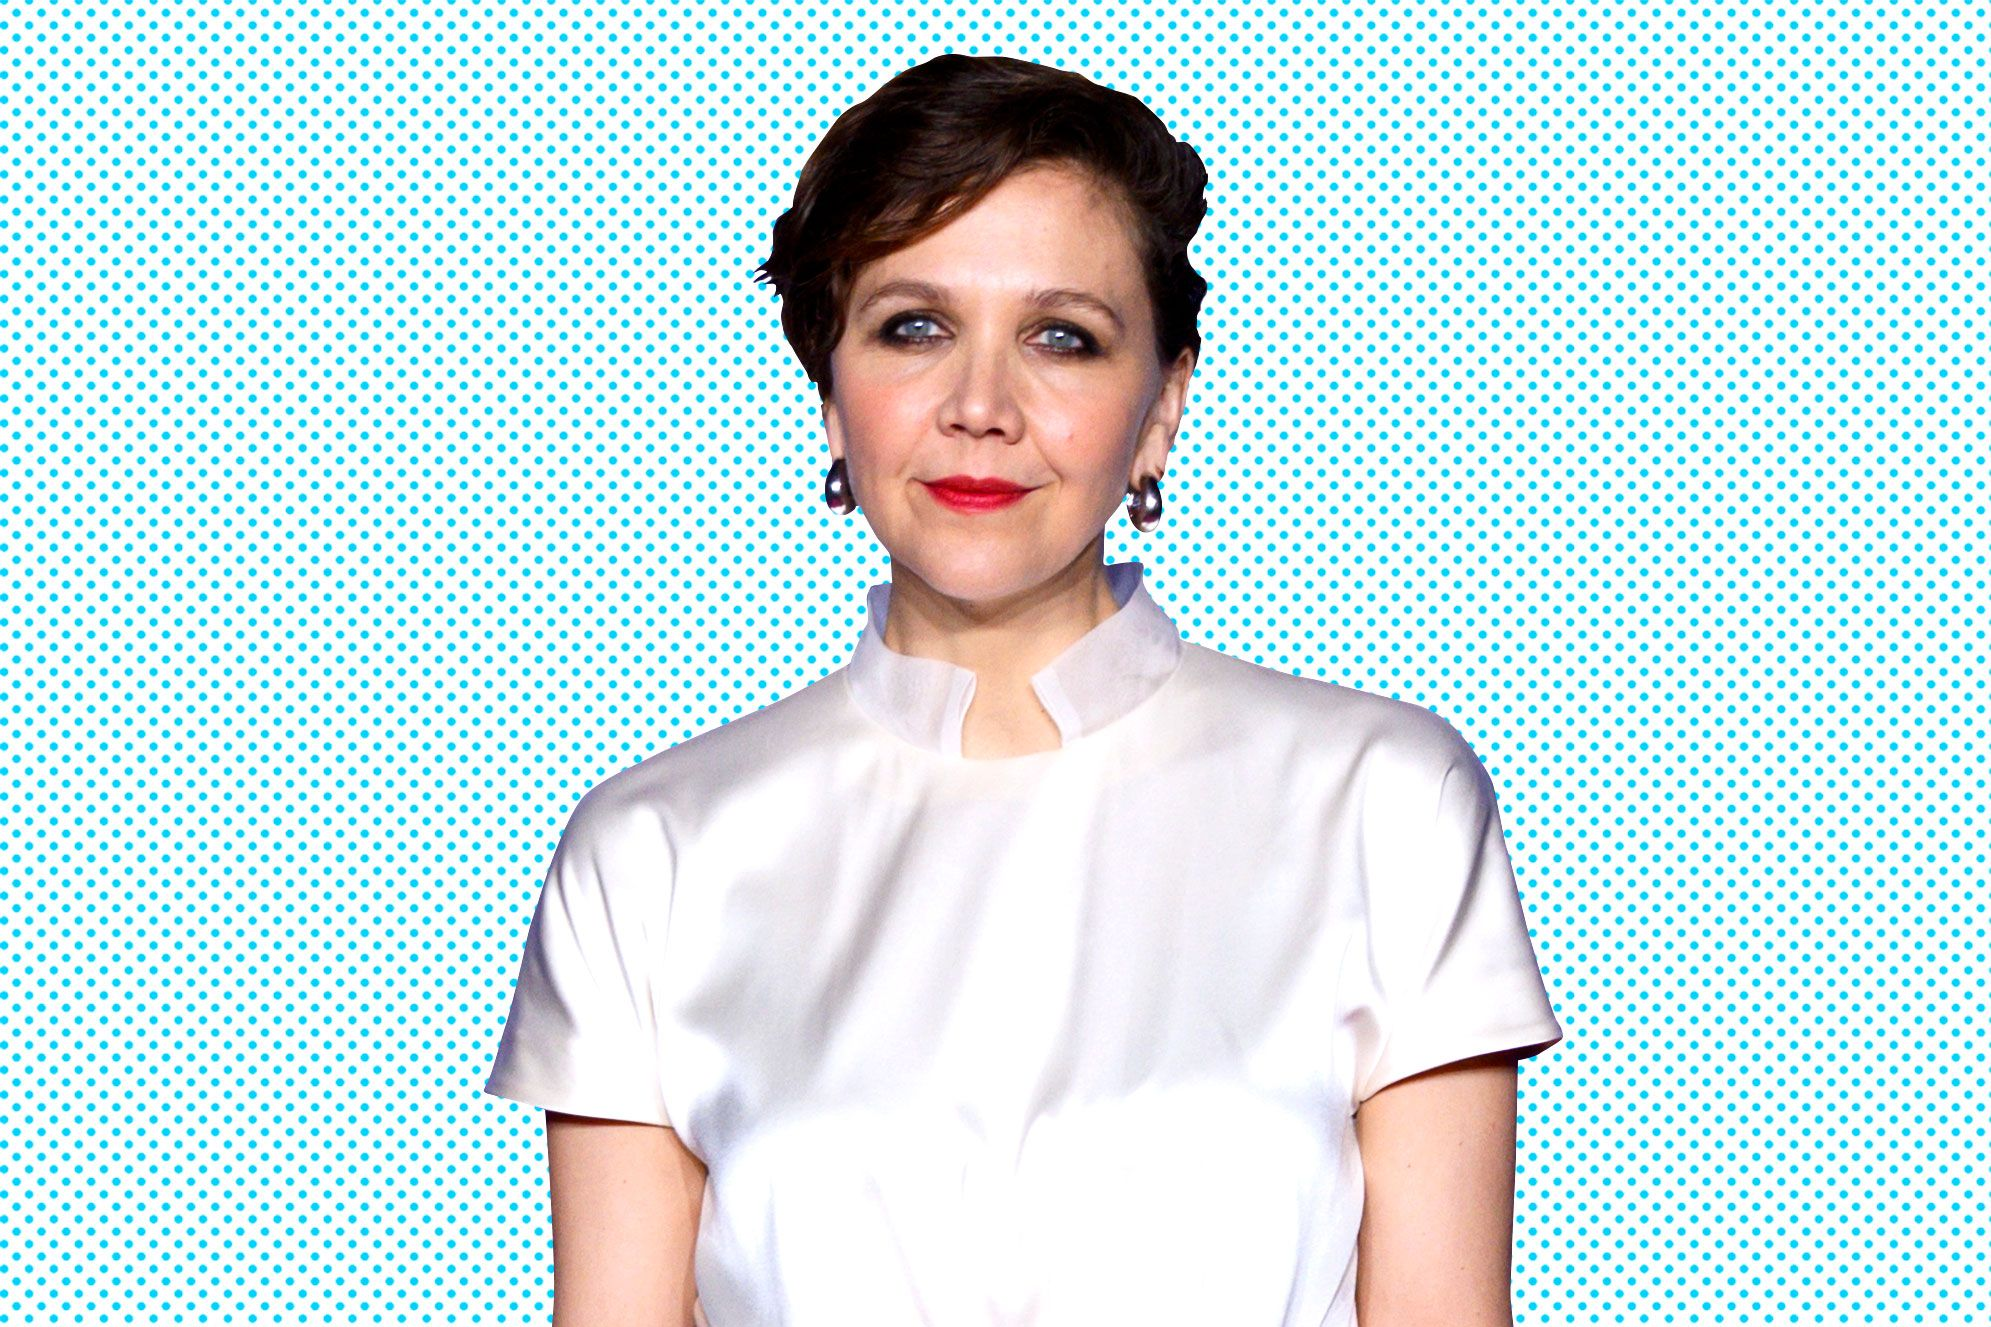 Maggie Gyllenhaal on The Deuce and Playing Candy